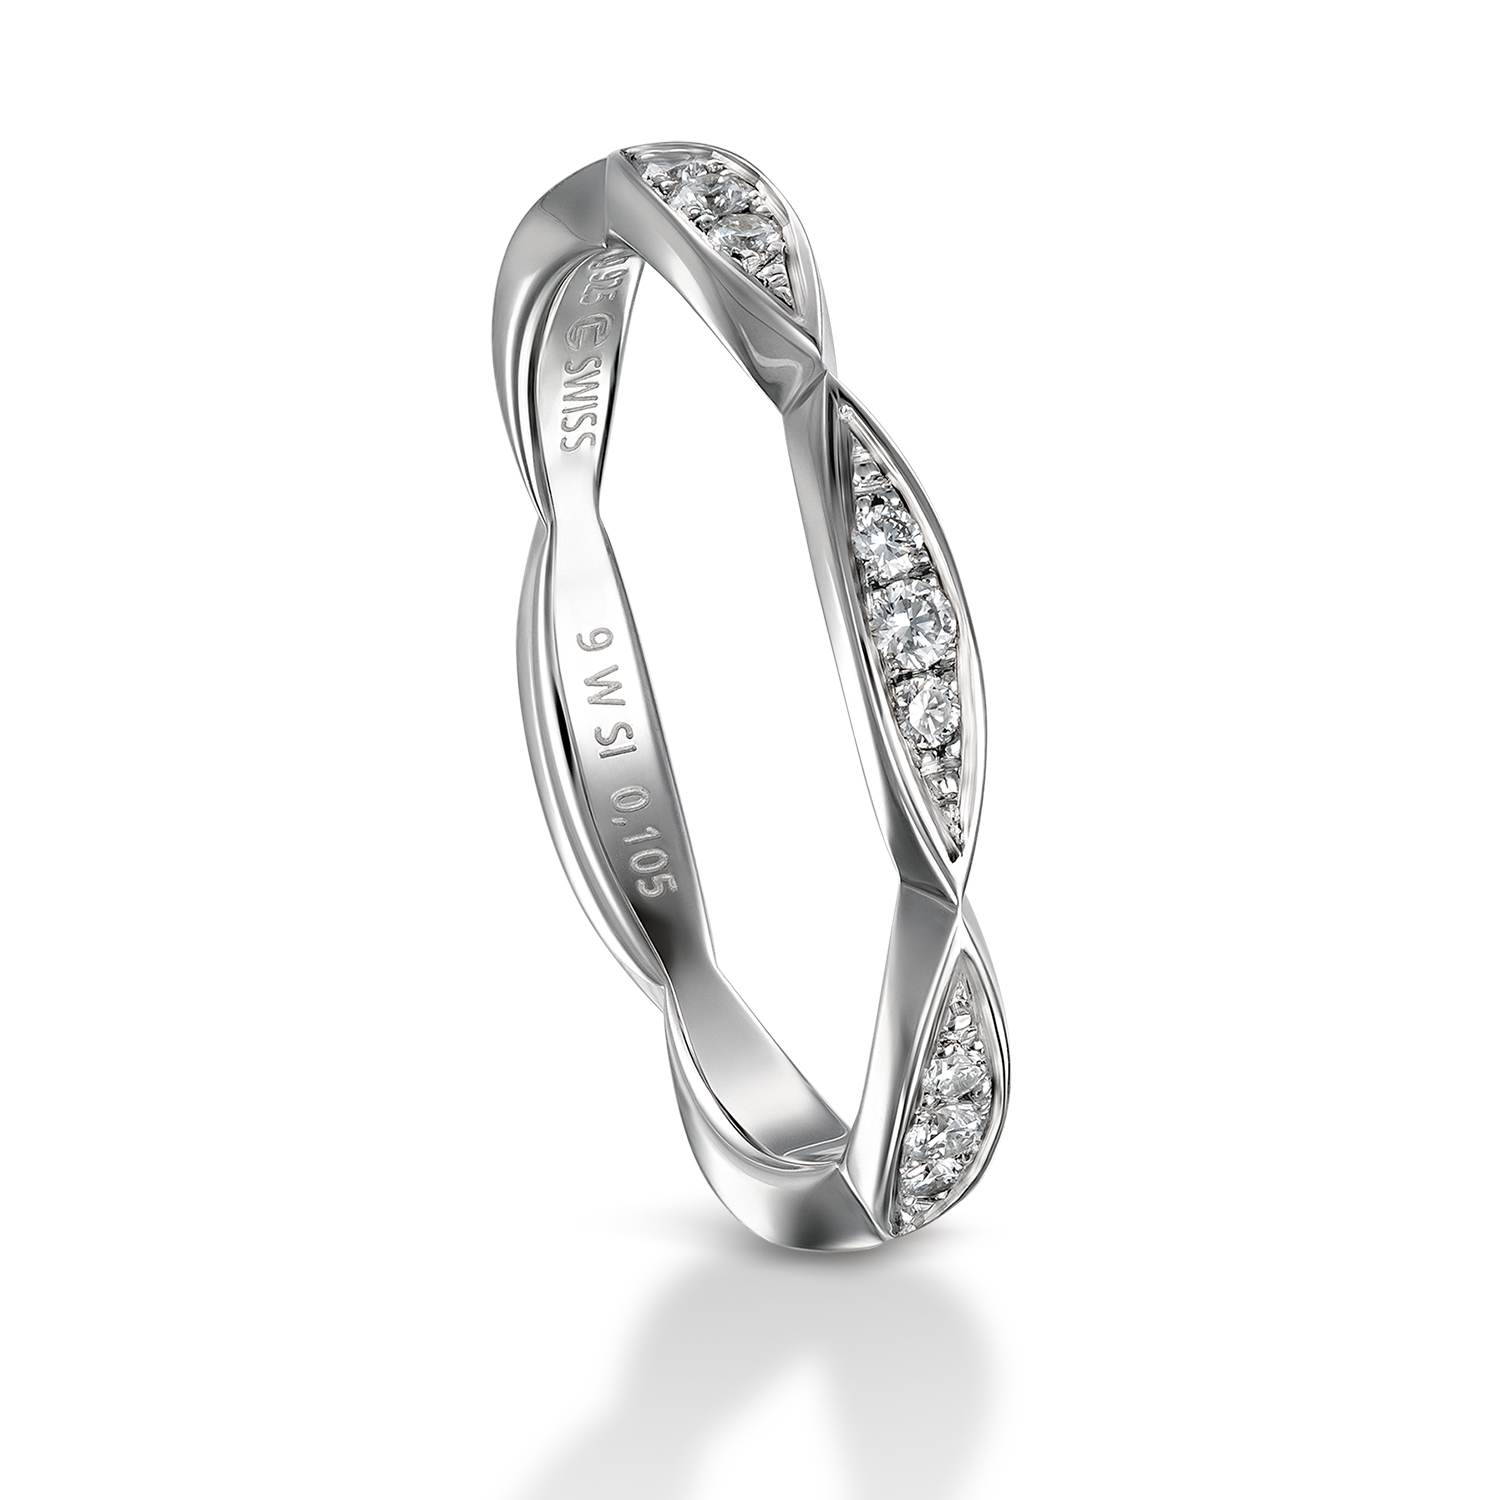 Wedding bands, Trauringe, Gold, Platin, Diamanten, Heiraten, jewelry, diamond ring